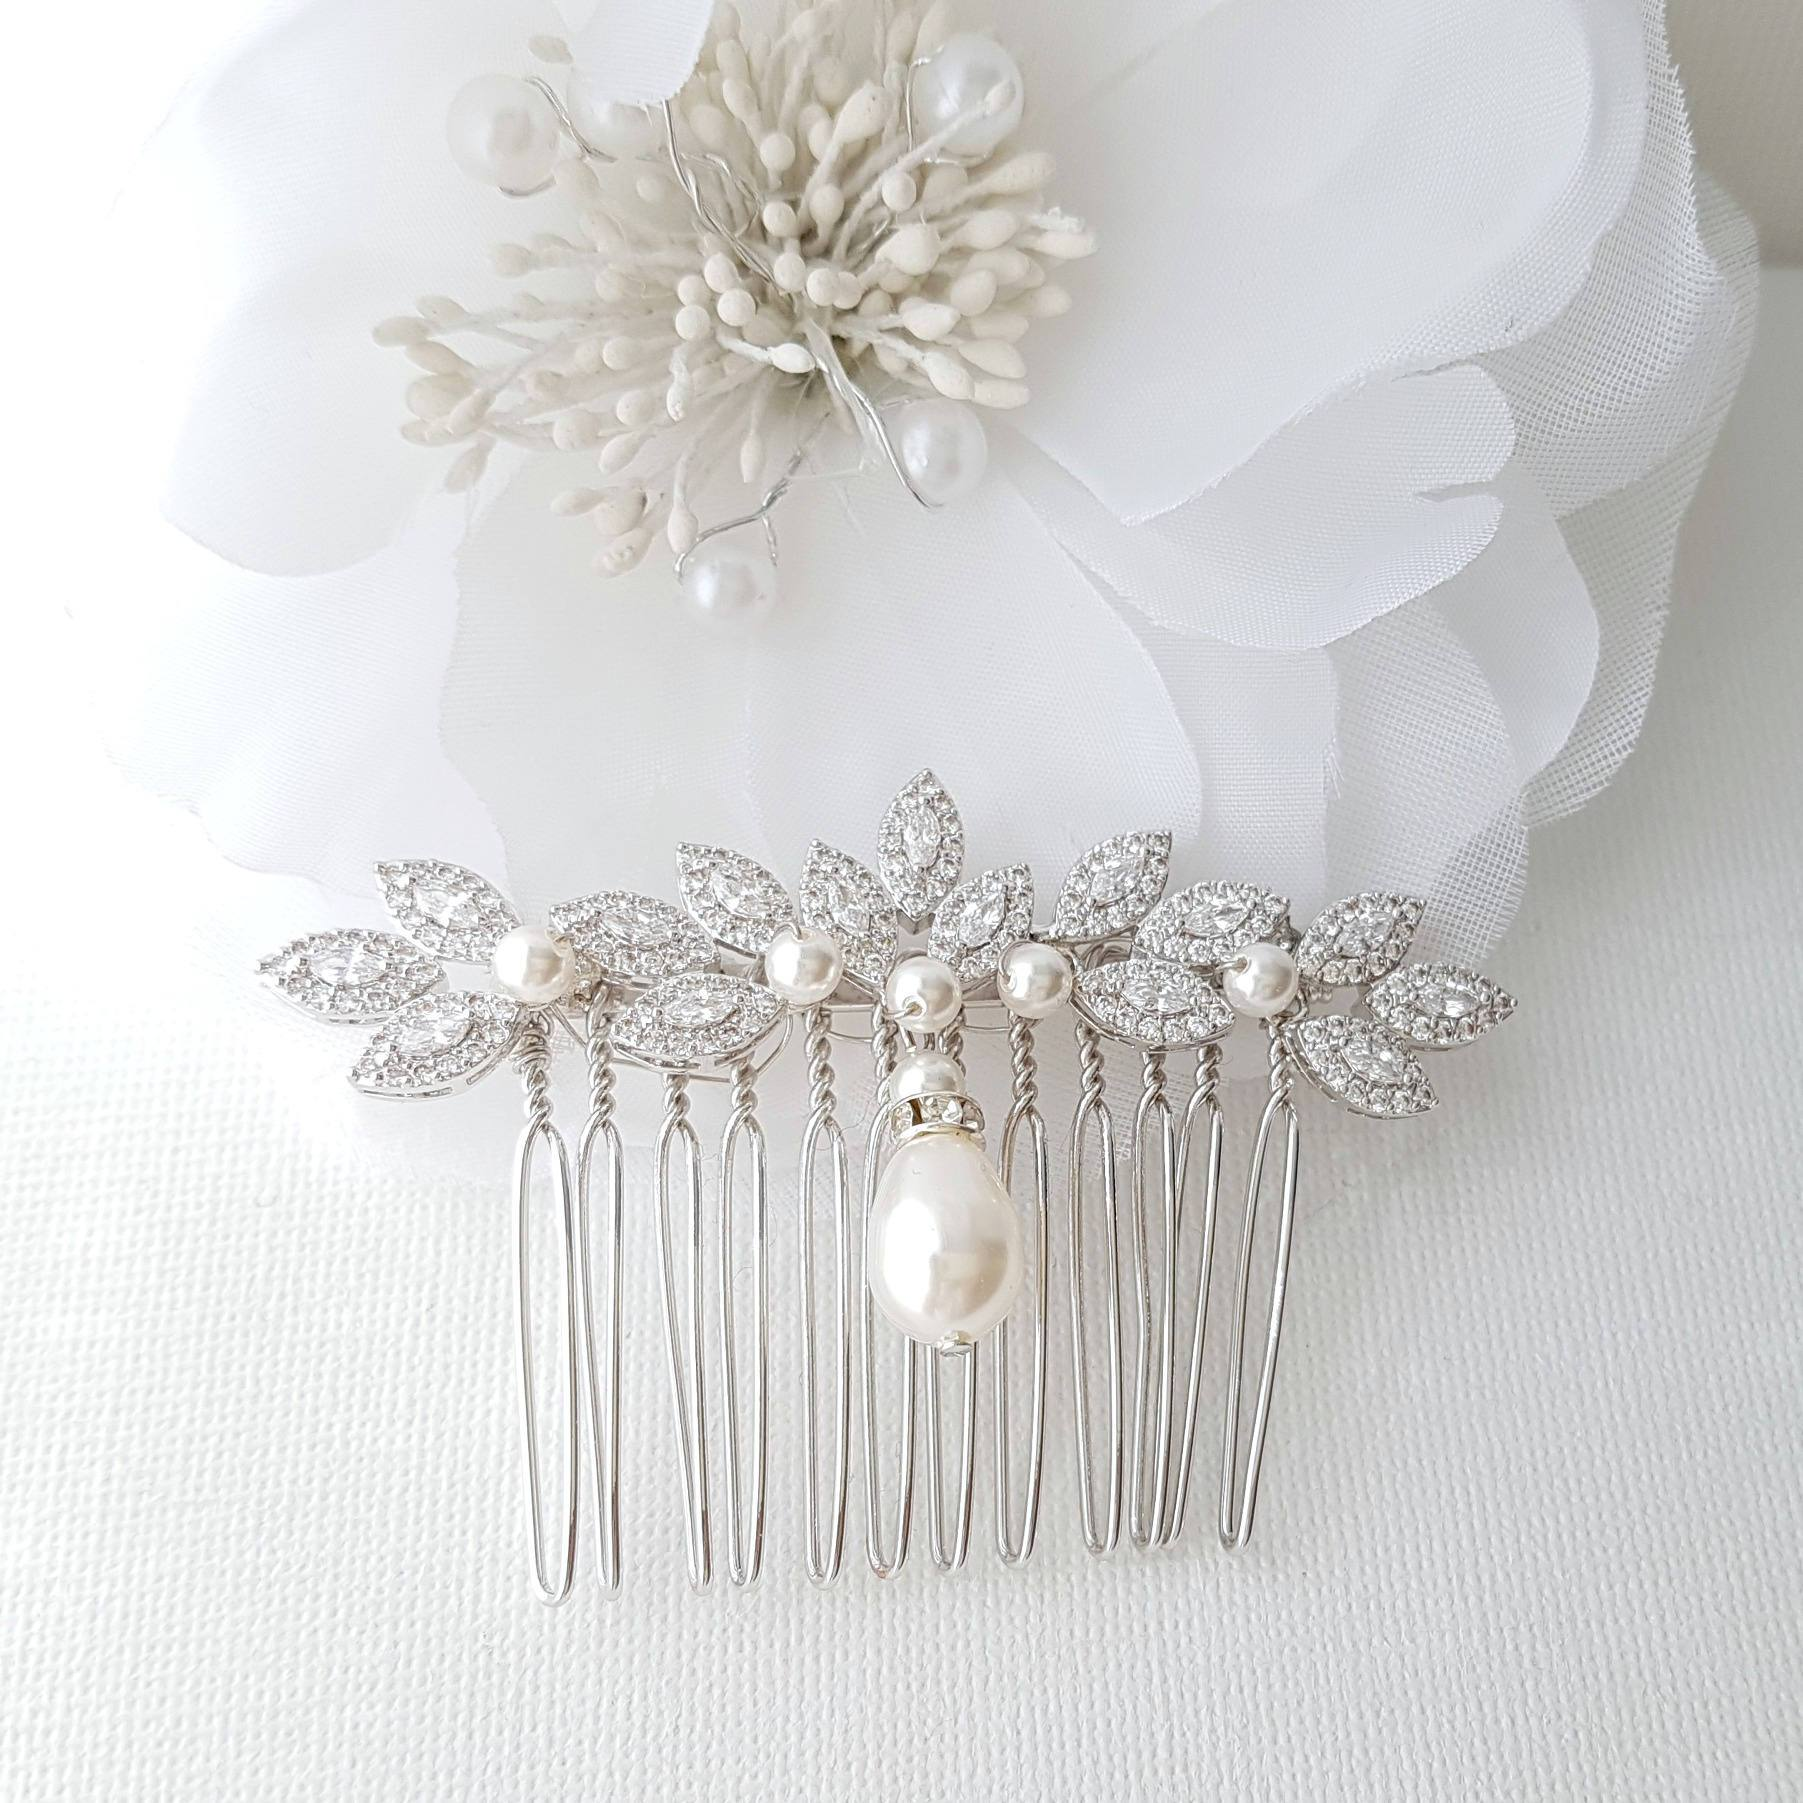 Crystal Hair Comb, Pearl Wedding Hair Comb, Leaf Haircomb, Zirconia Hair Comb, Swarovski Pearls, Bridal Hairpiece, Hair Accessories, Abby - PoetryDesigns